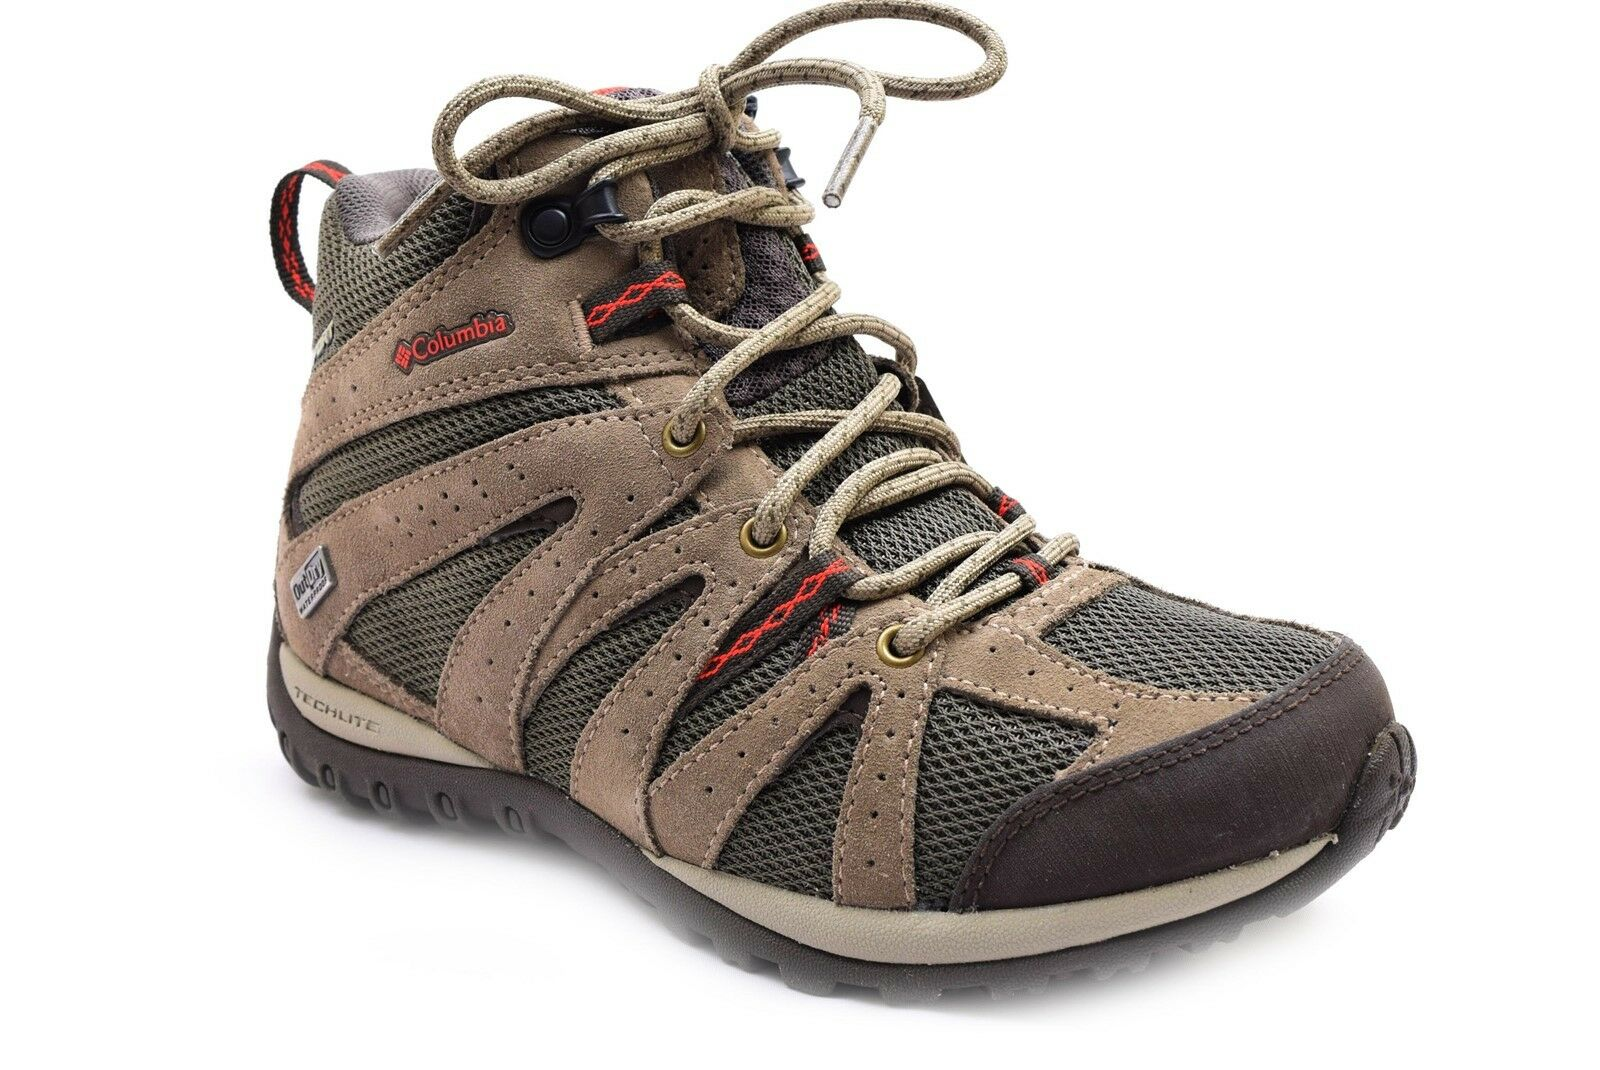 Columbia Women's Grand Canyon Mid Waterproof Mud / Poppy Red Size 5.5